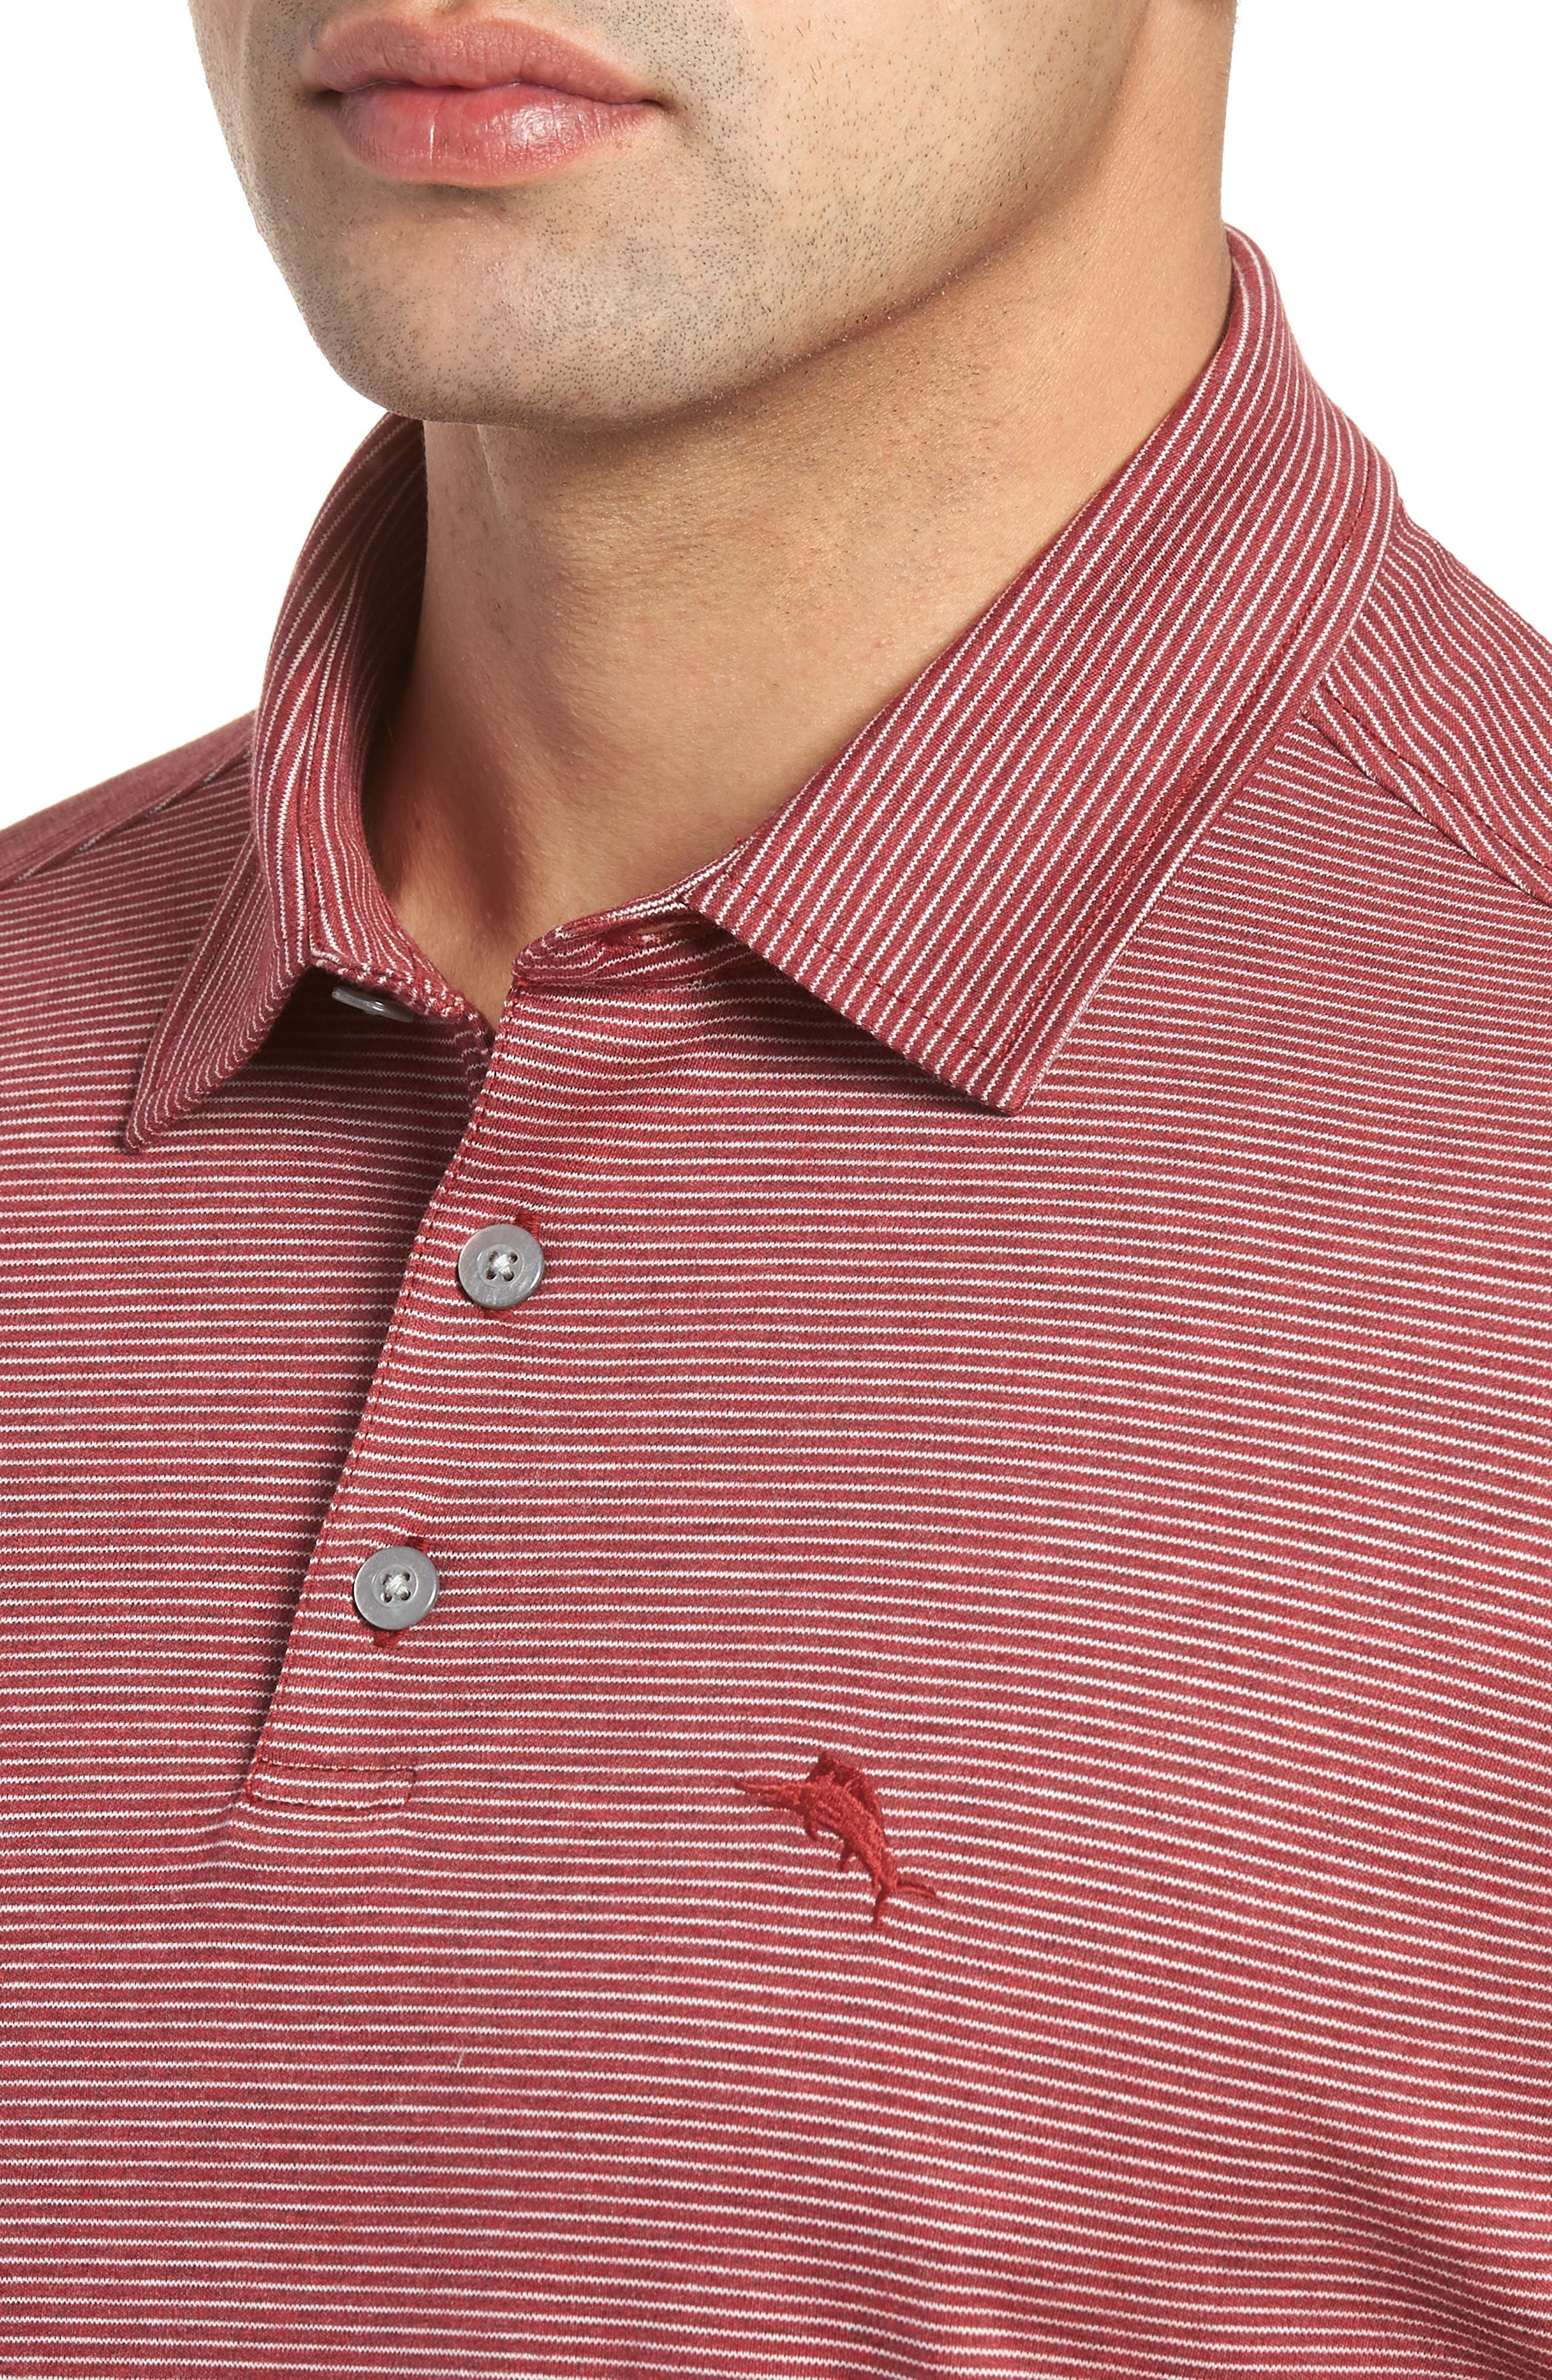 Pacific Shore Polo,                             Alternate thumbnail 4, color,                             Beet Red Heather